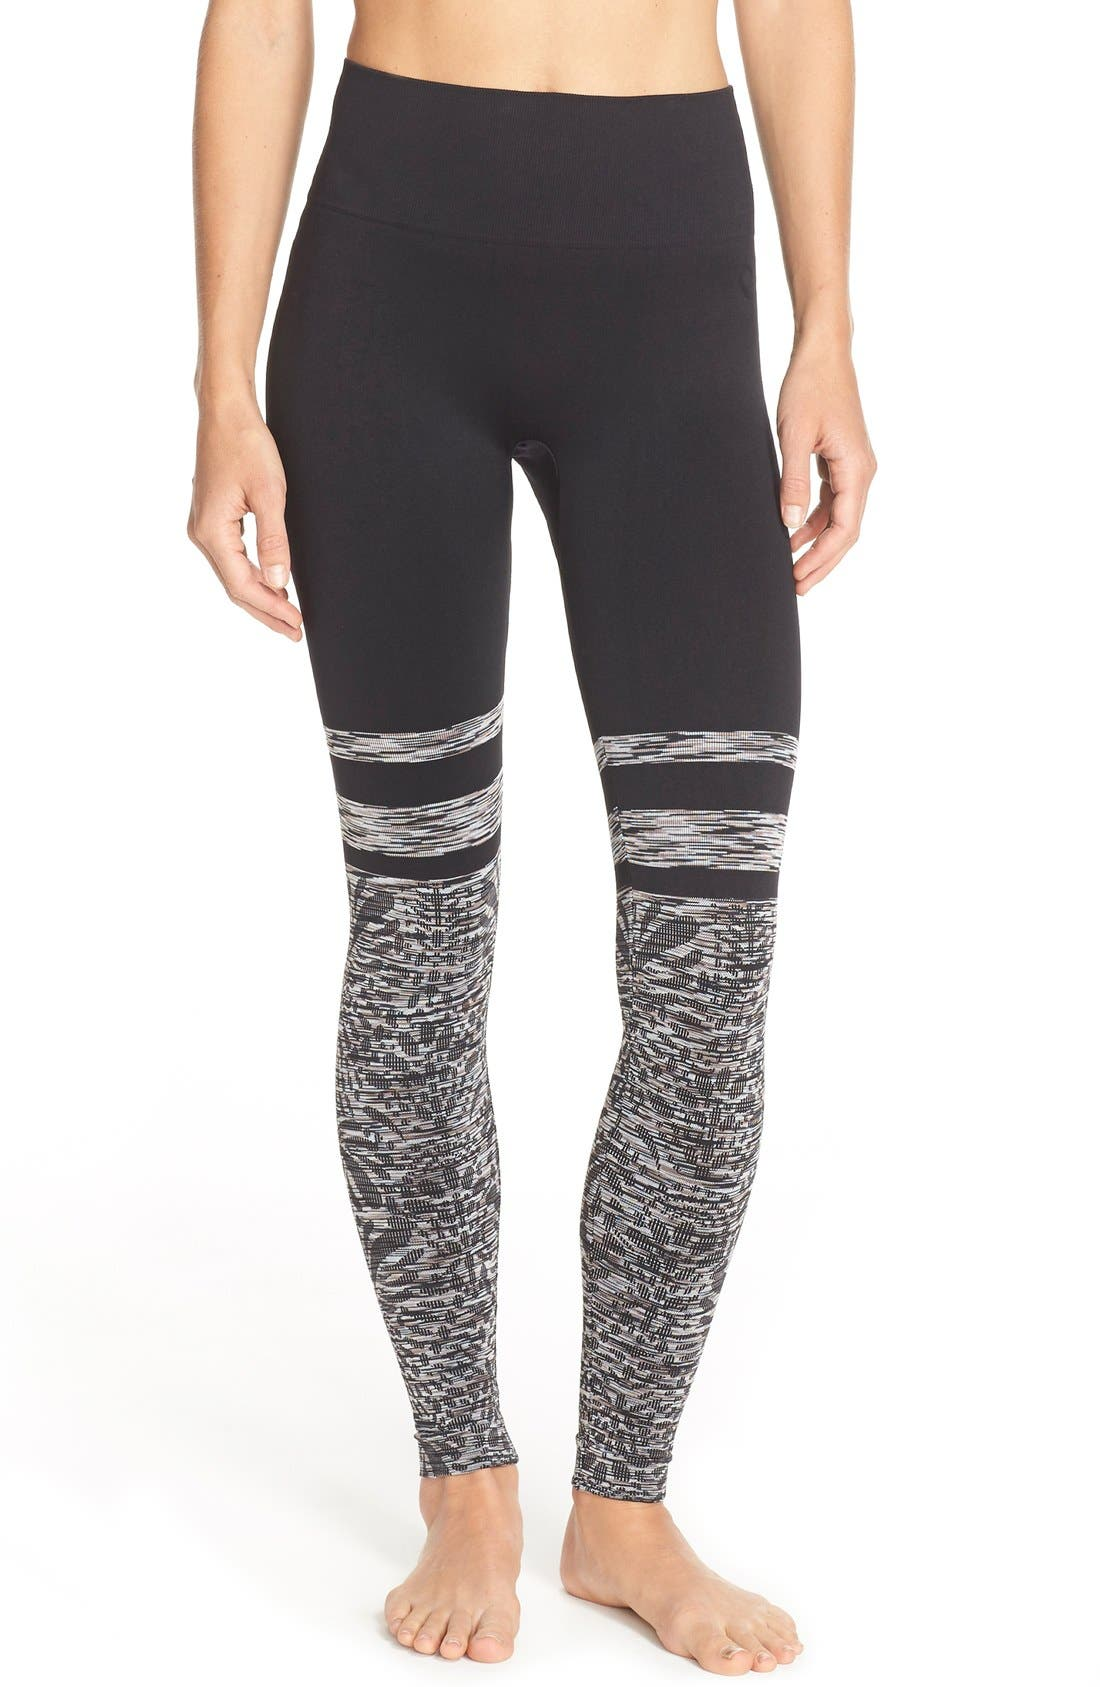 Alternate Image 1 Selected - Climawear 'Sitting Pretty' High Rise Leggings